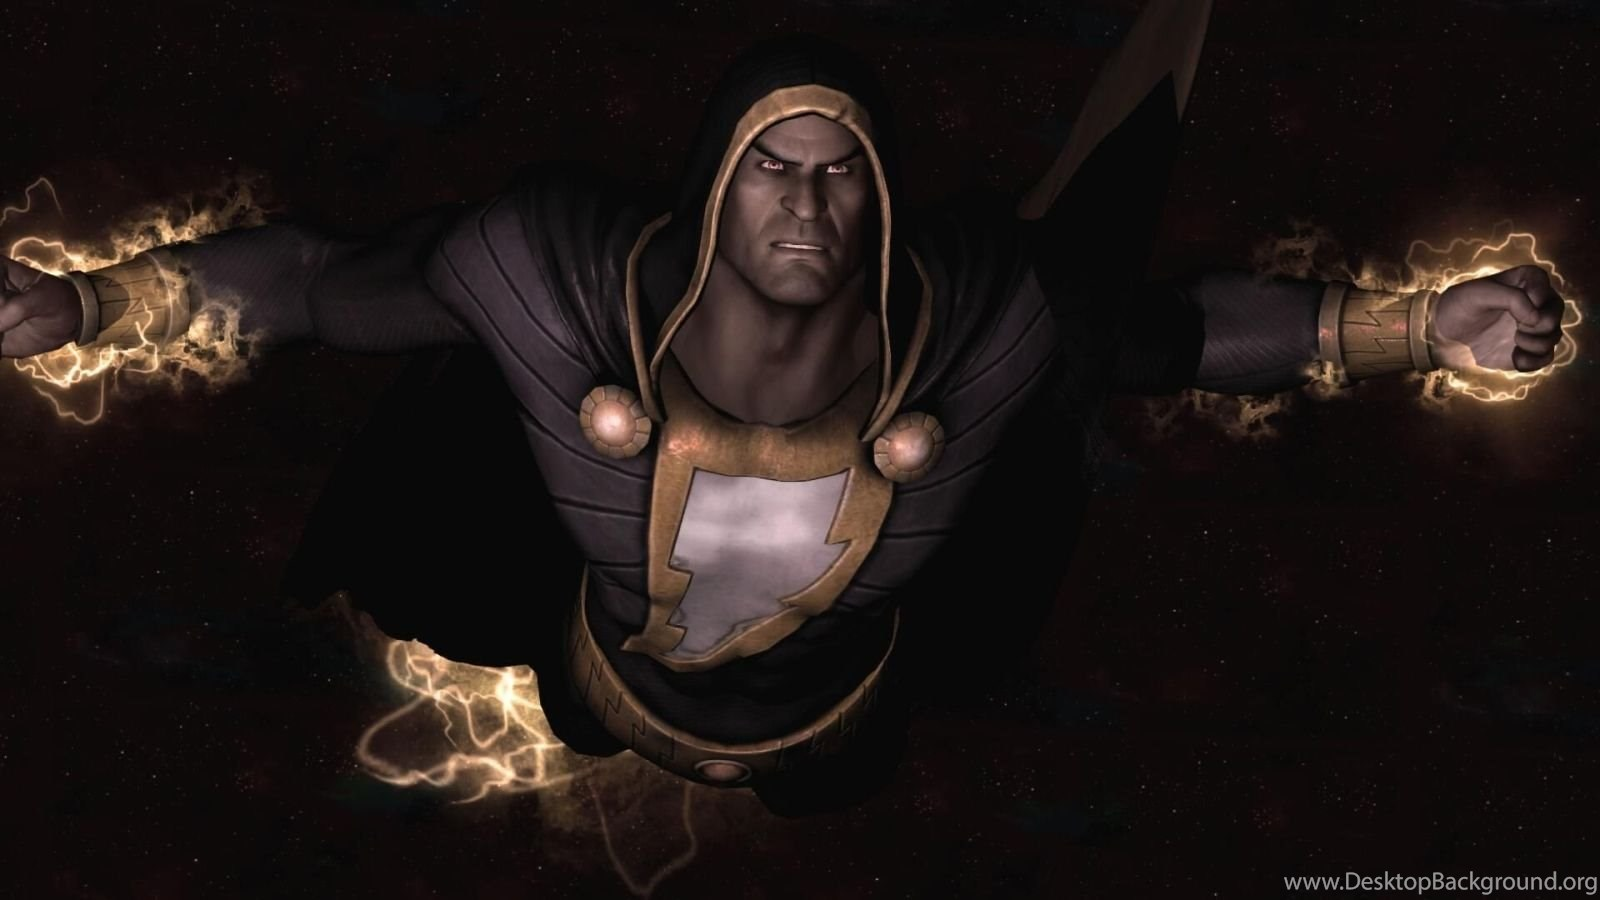 New 52 Black Adam Is Here Injustice Gods Among Us Ultimate